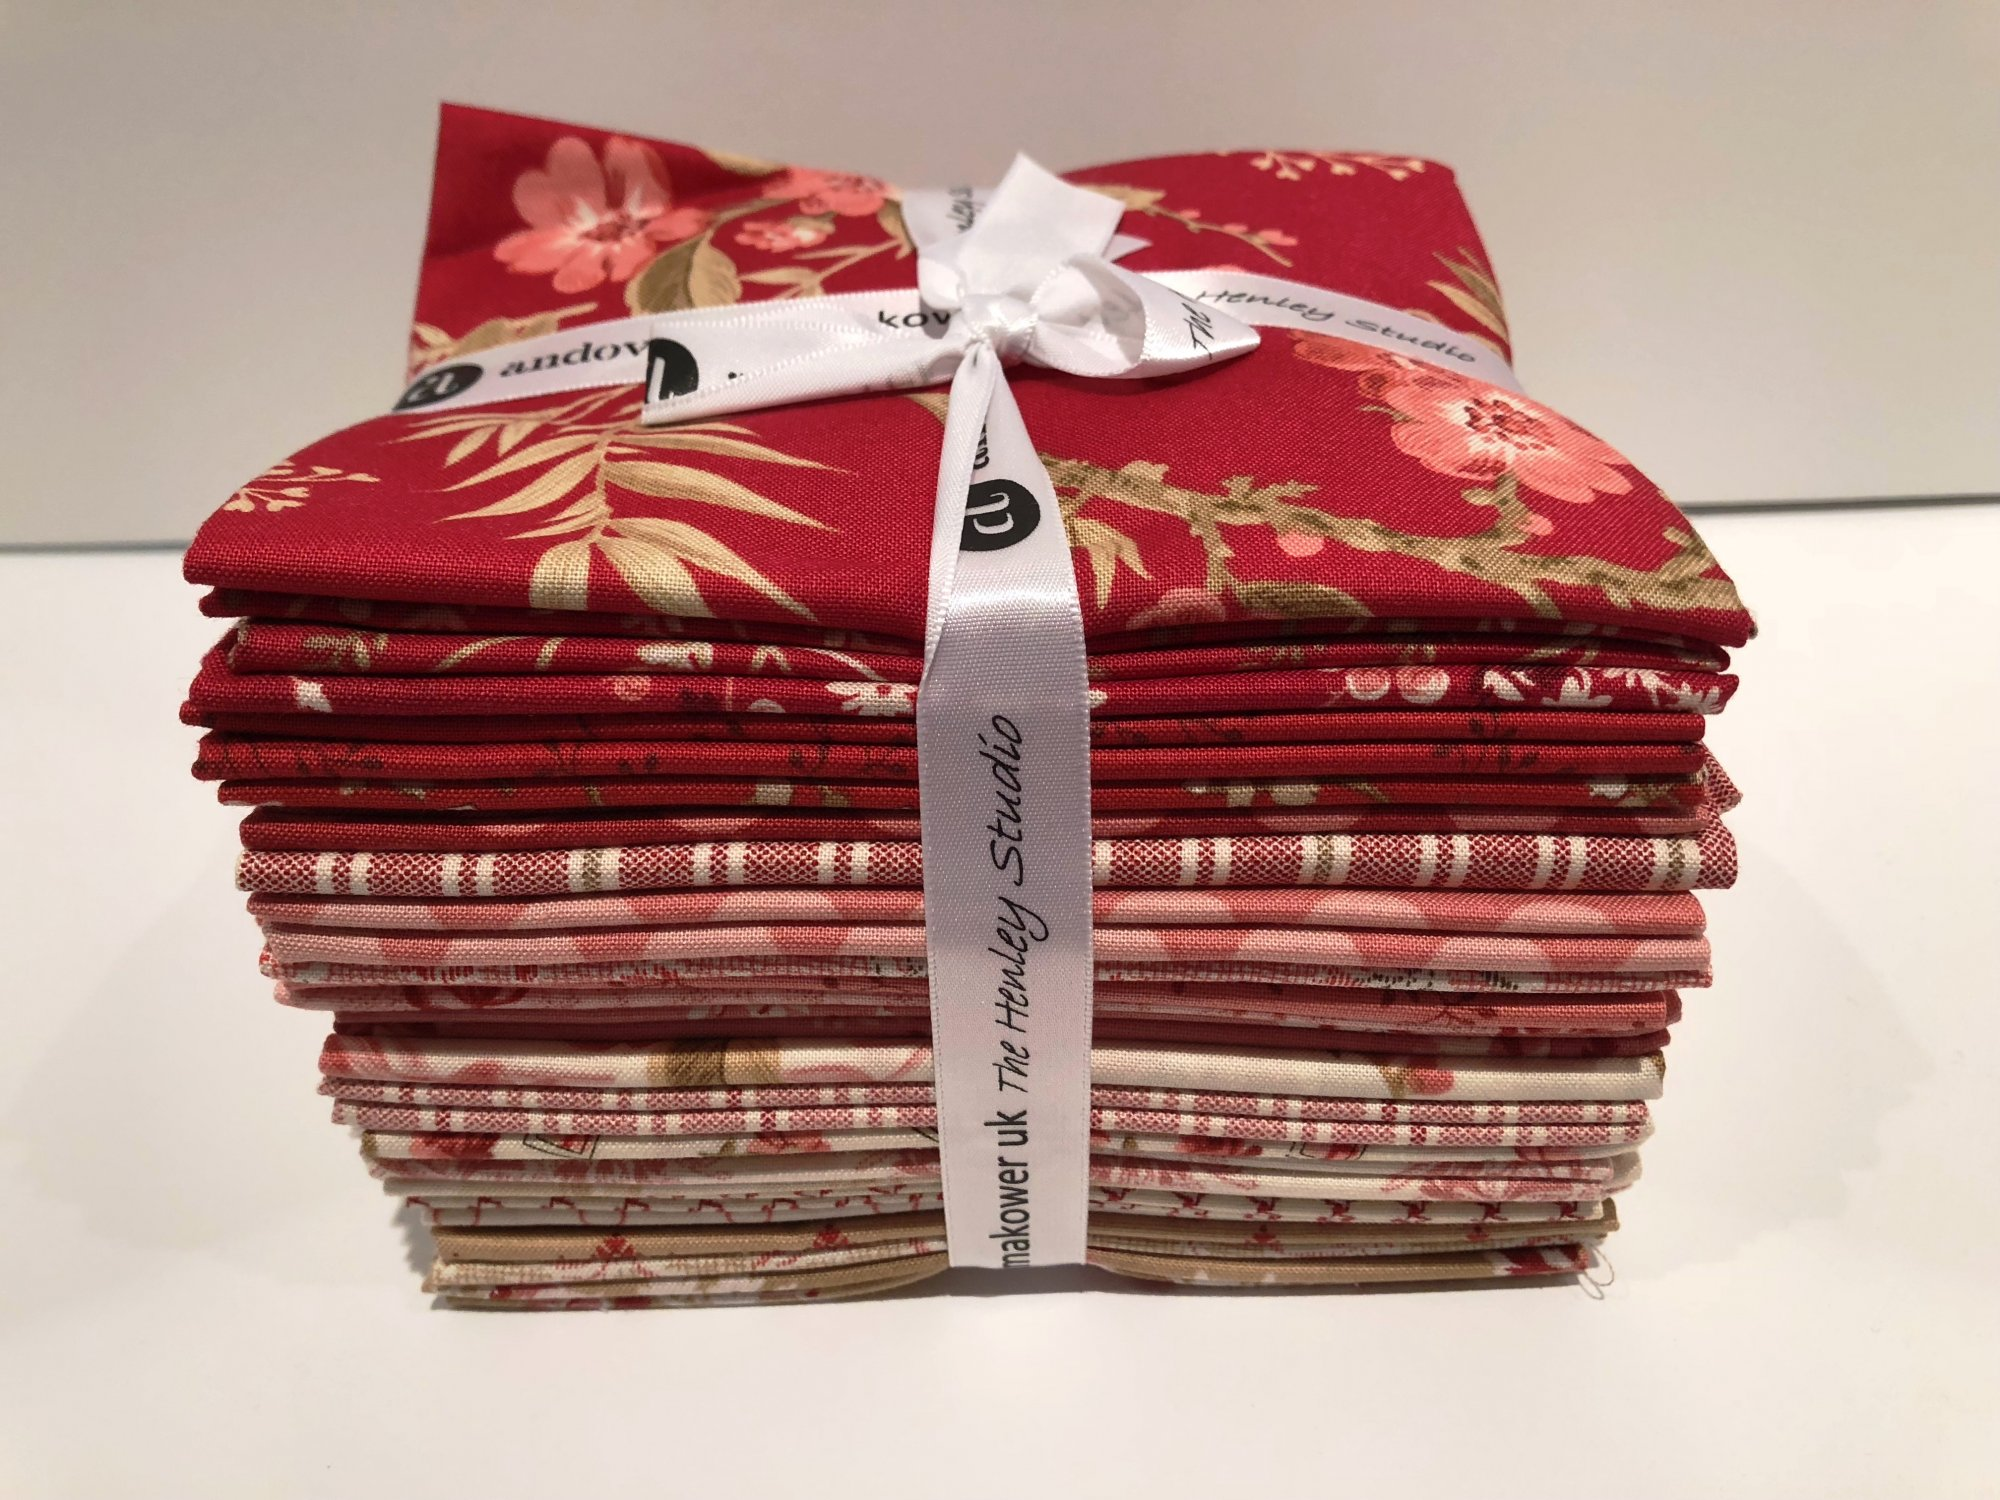 Andover Little Sweetheart Fat Quarters by Edyta Sitar from Laundry Basket Quilts 22 pc